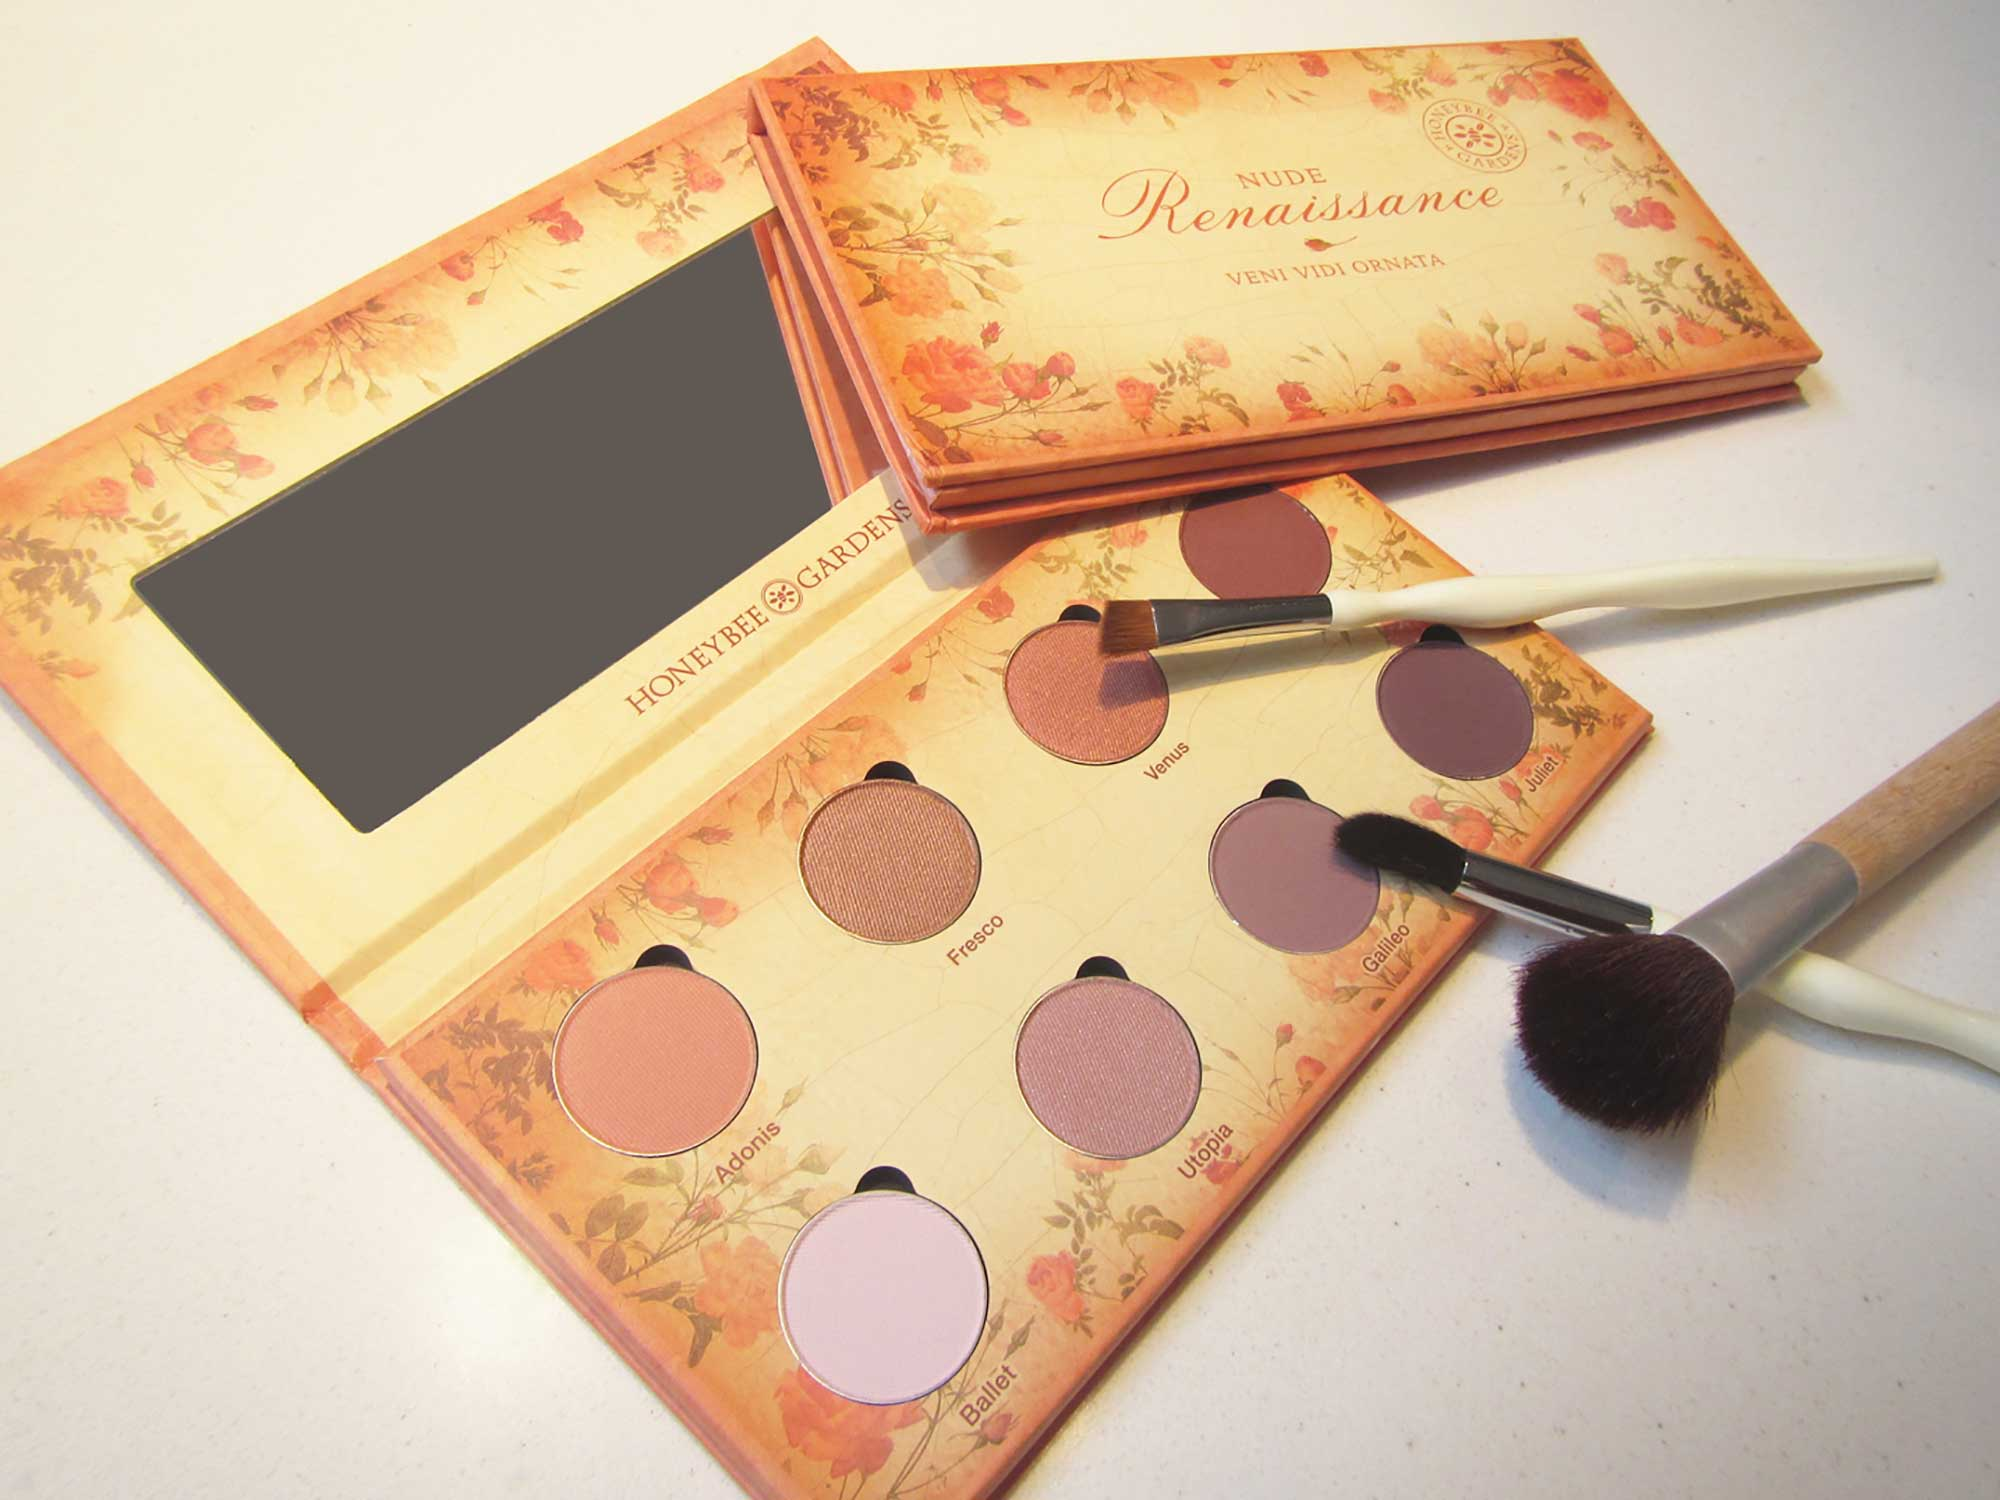 Honeybee Gardens packaging design for the Nude Renaissance eyeshadow palette